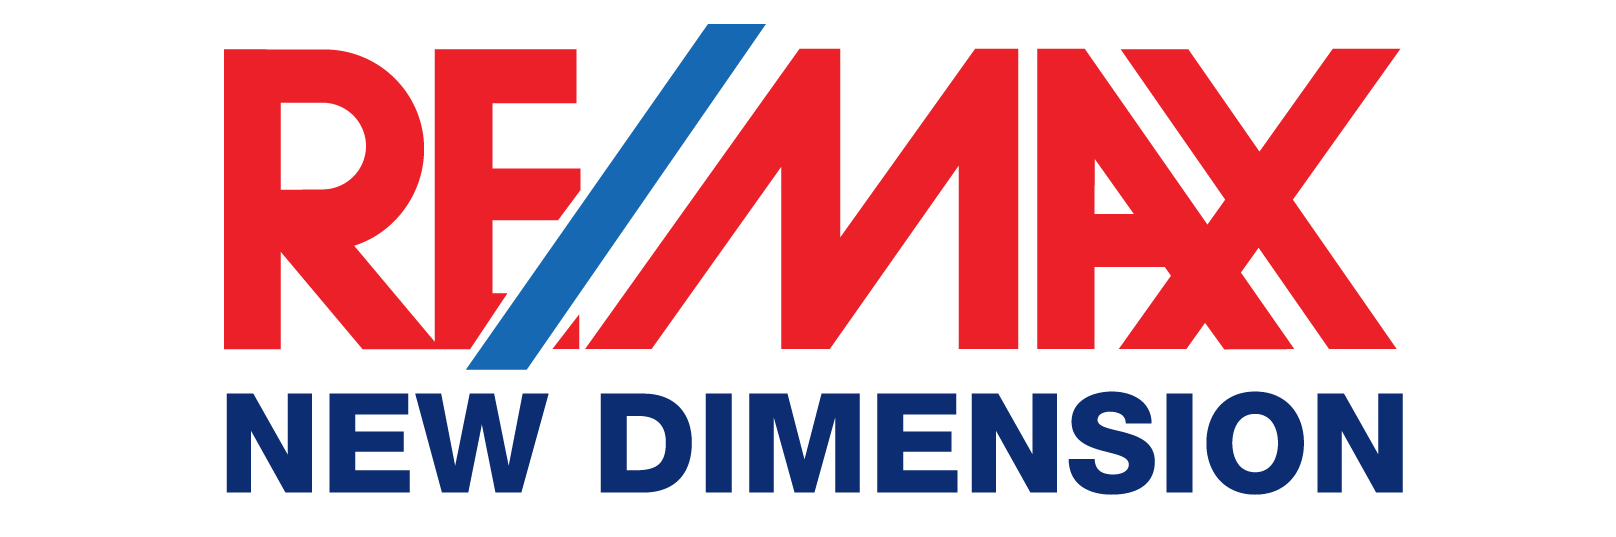 RE/MAX New Dimension logo